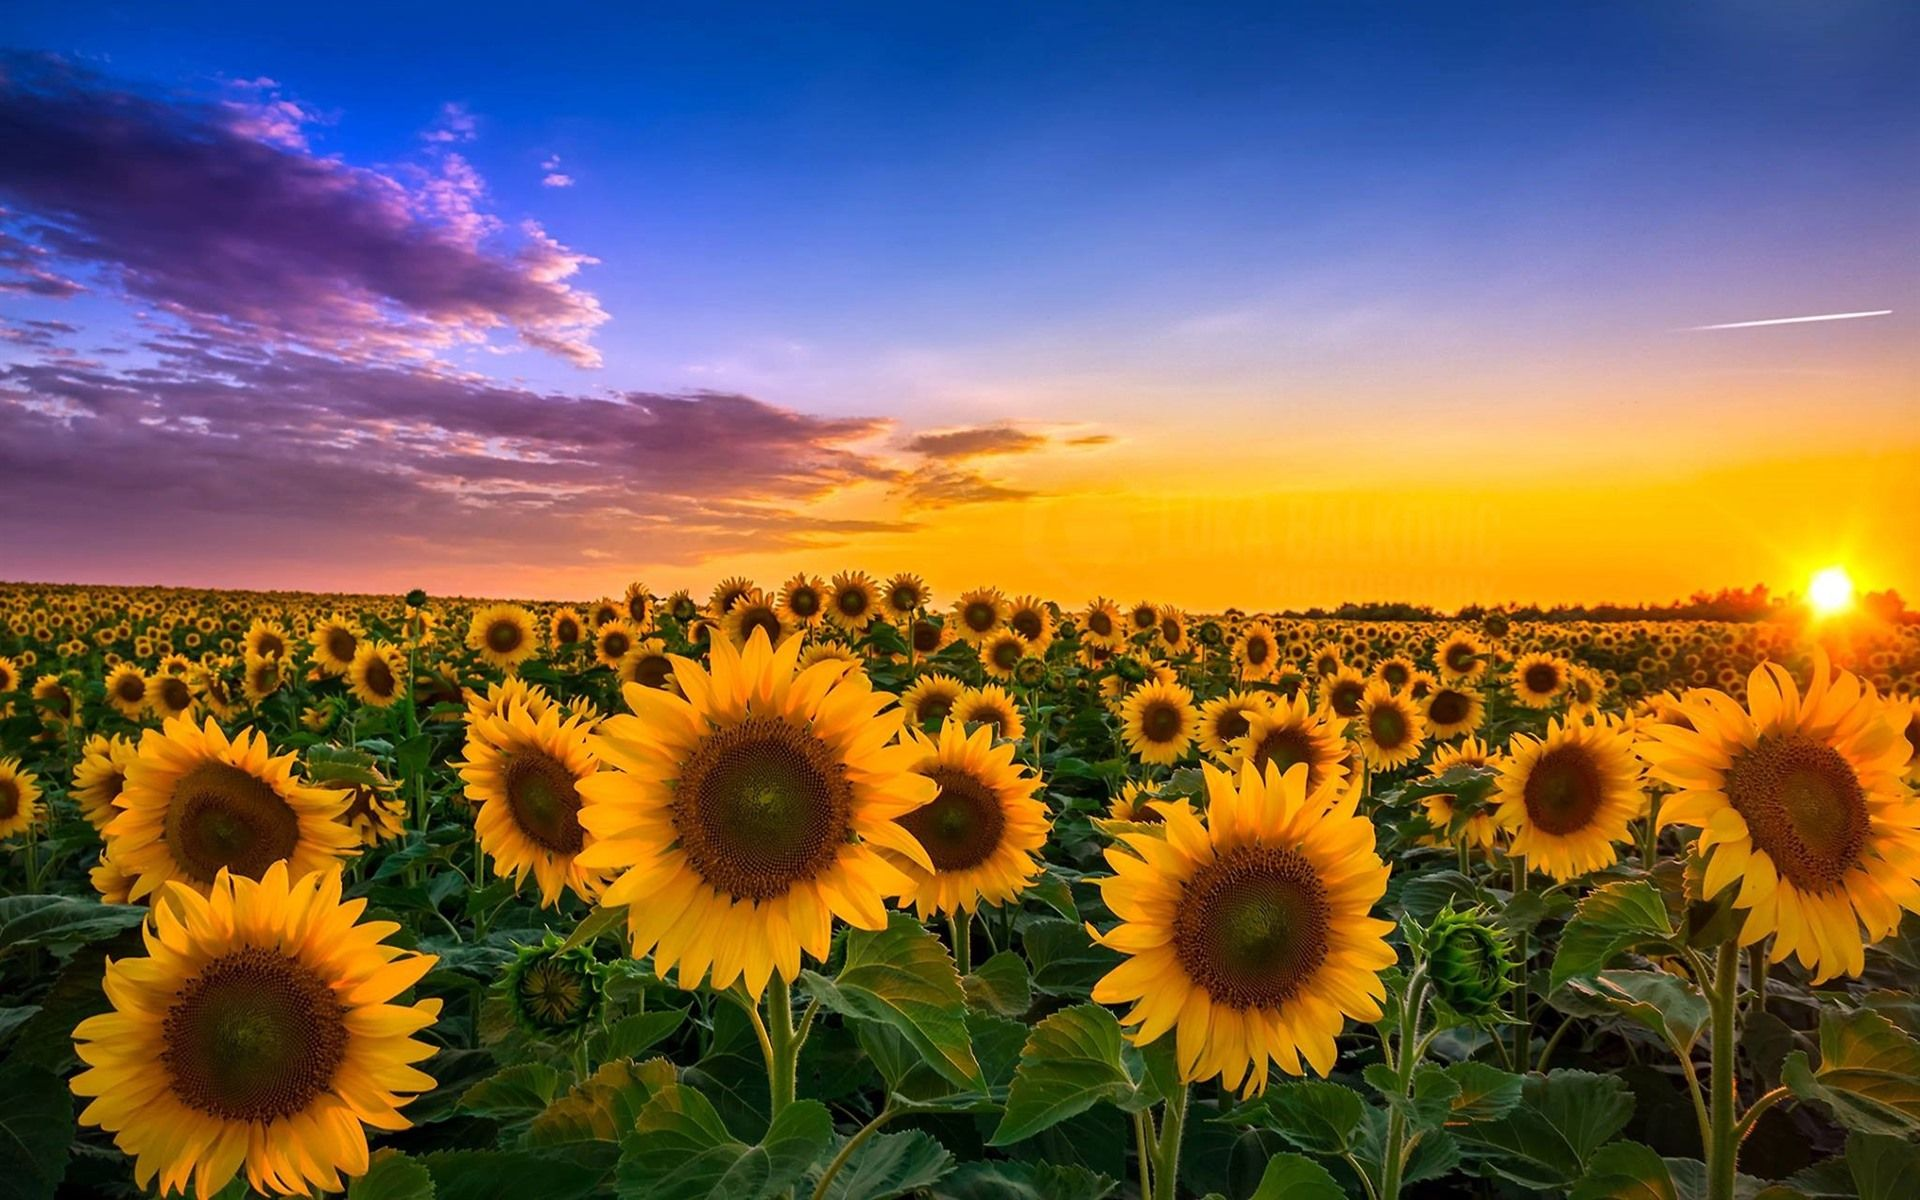 Sunny Sunflowers Wallpapers - Wallpaper Cave